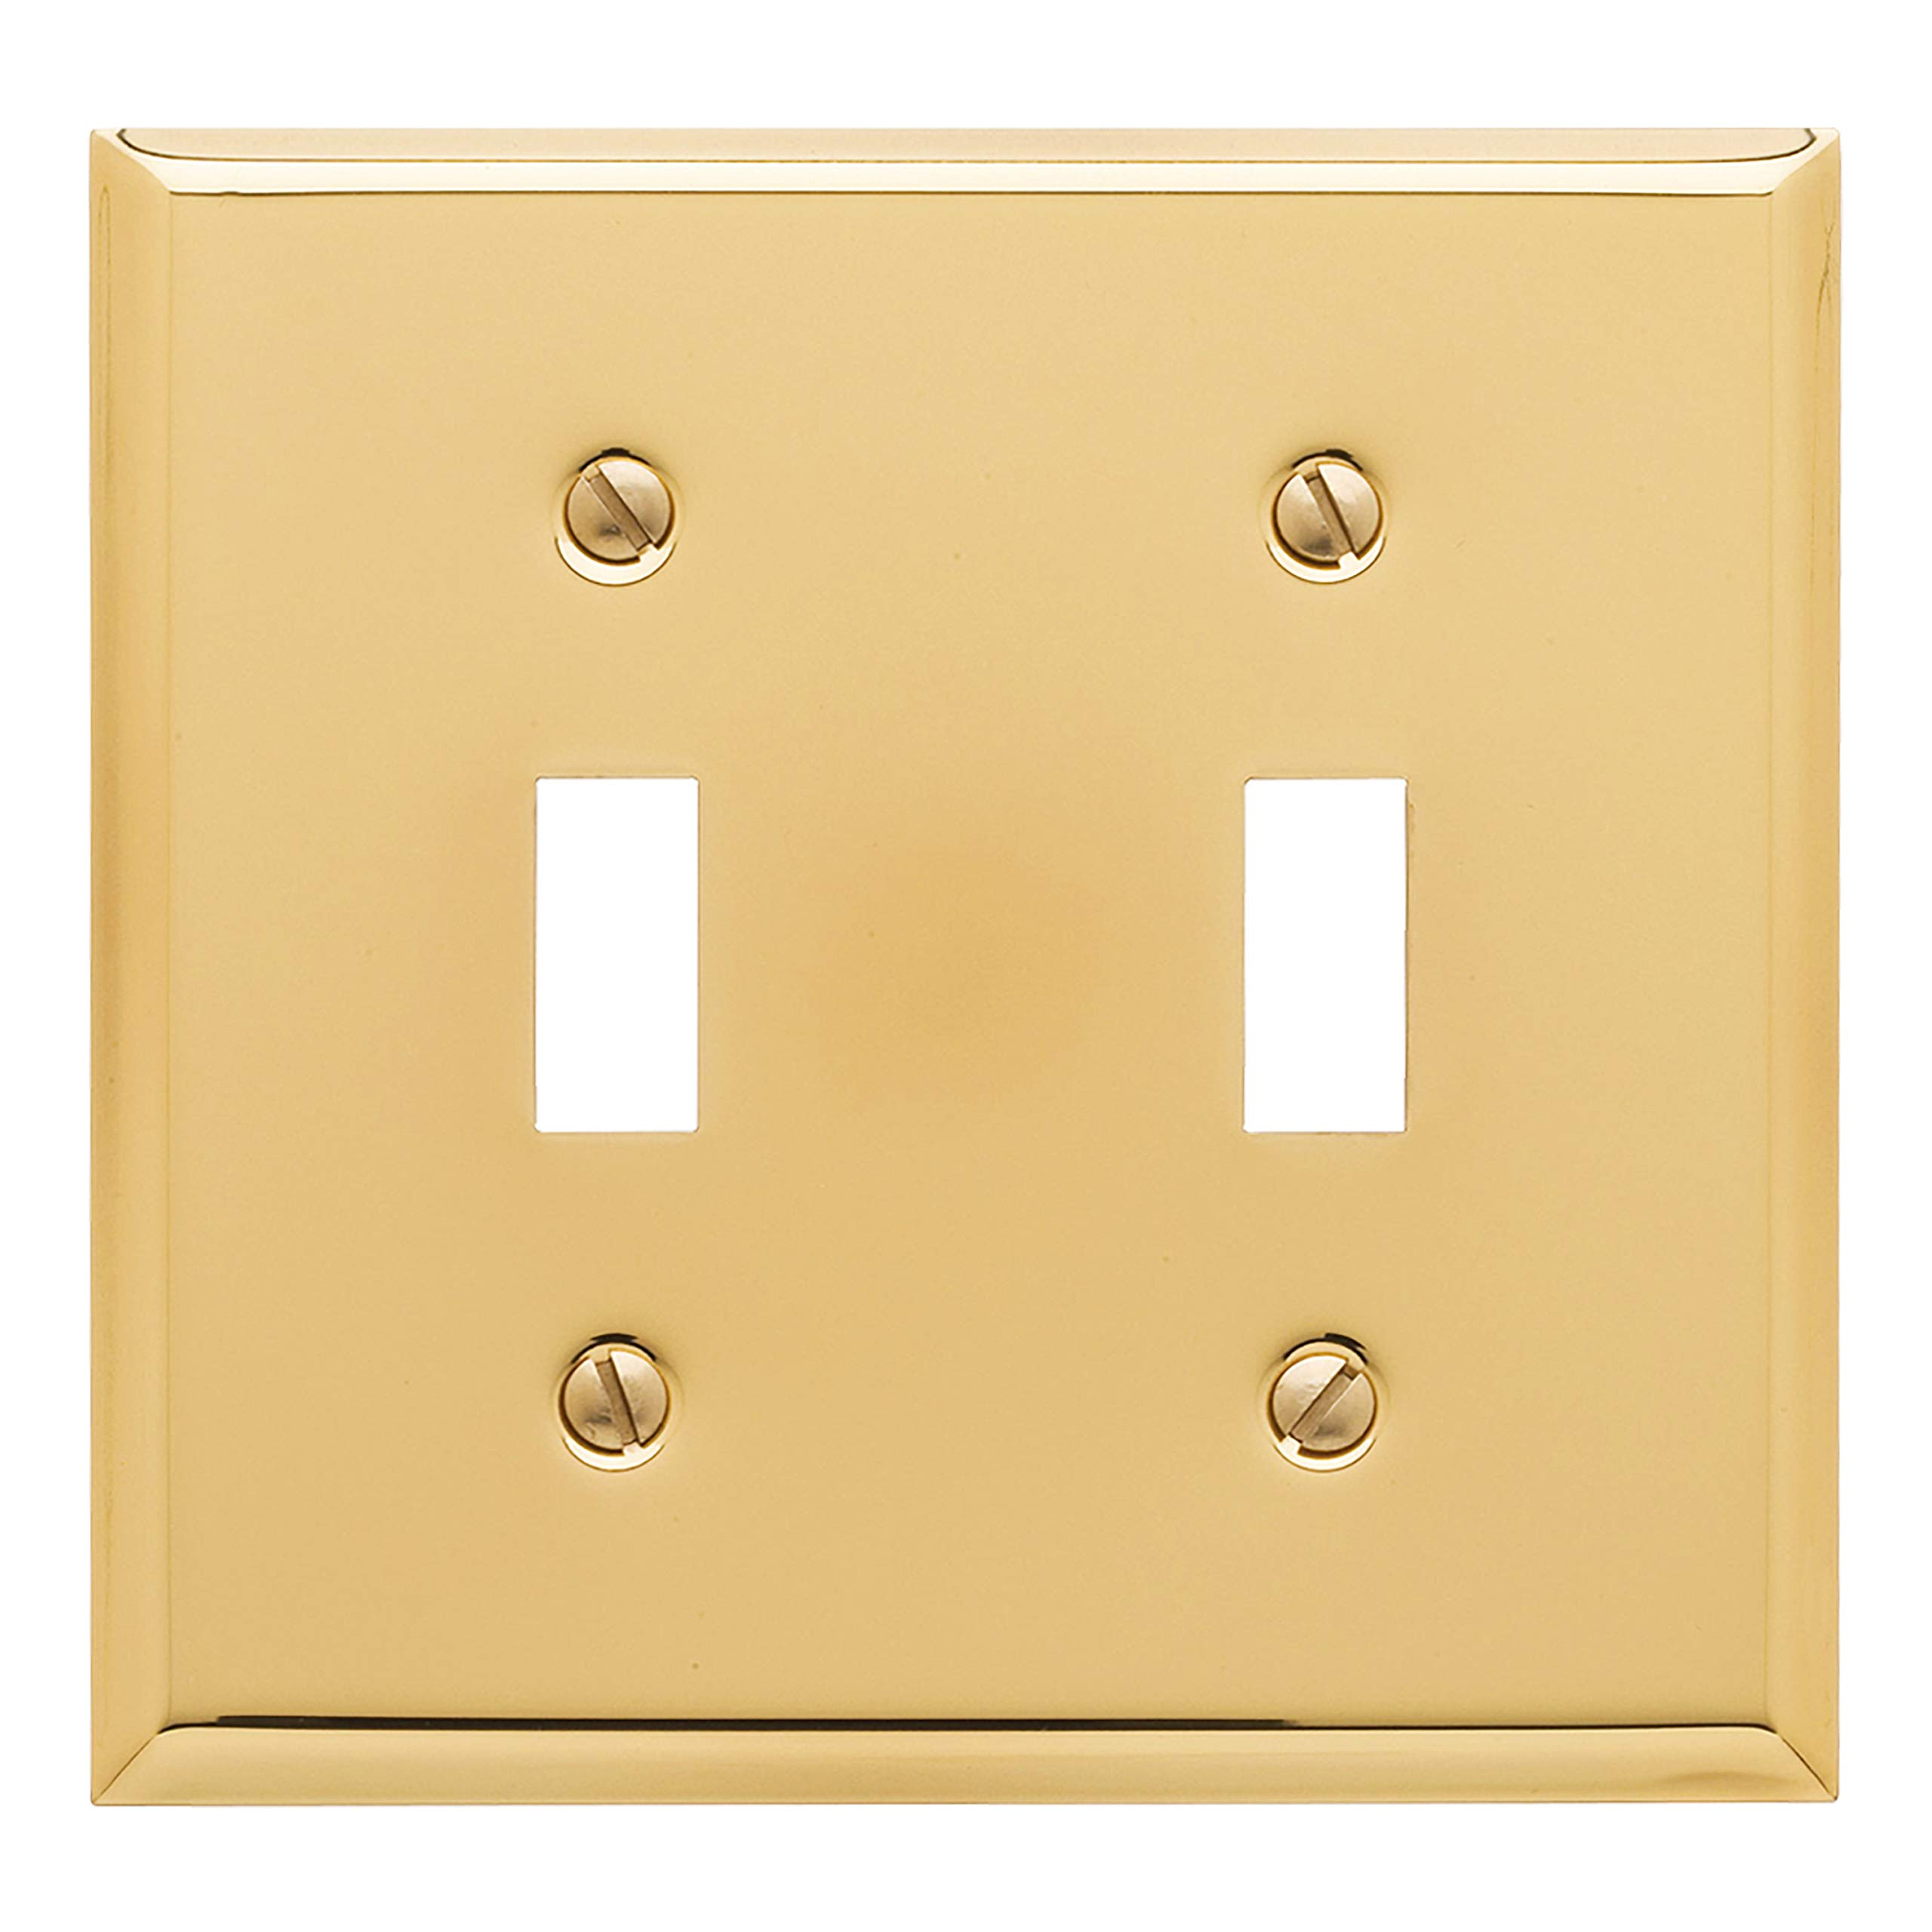 Baldwin Estate 4761.030.CD Square Beveled Edge Double Toggle Switch Wall Plate in Polished Brass, 4.5''x4.5'' by Baldwin